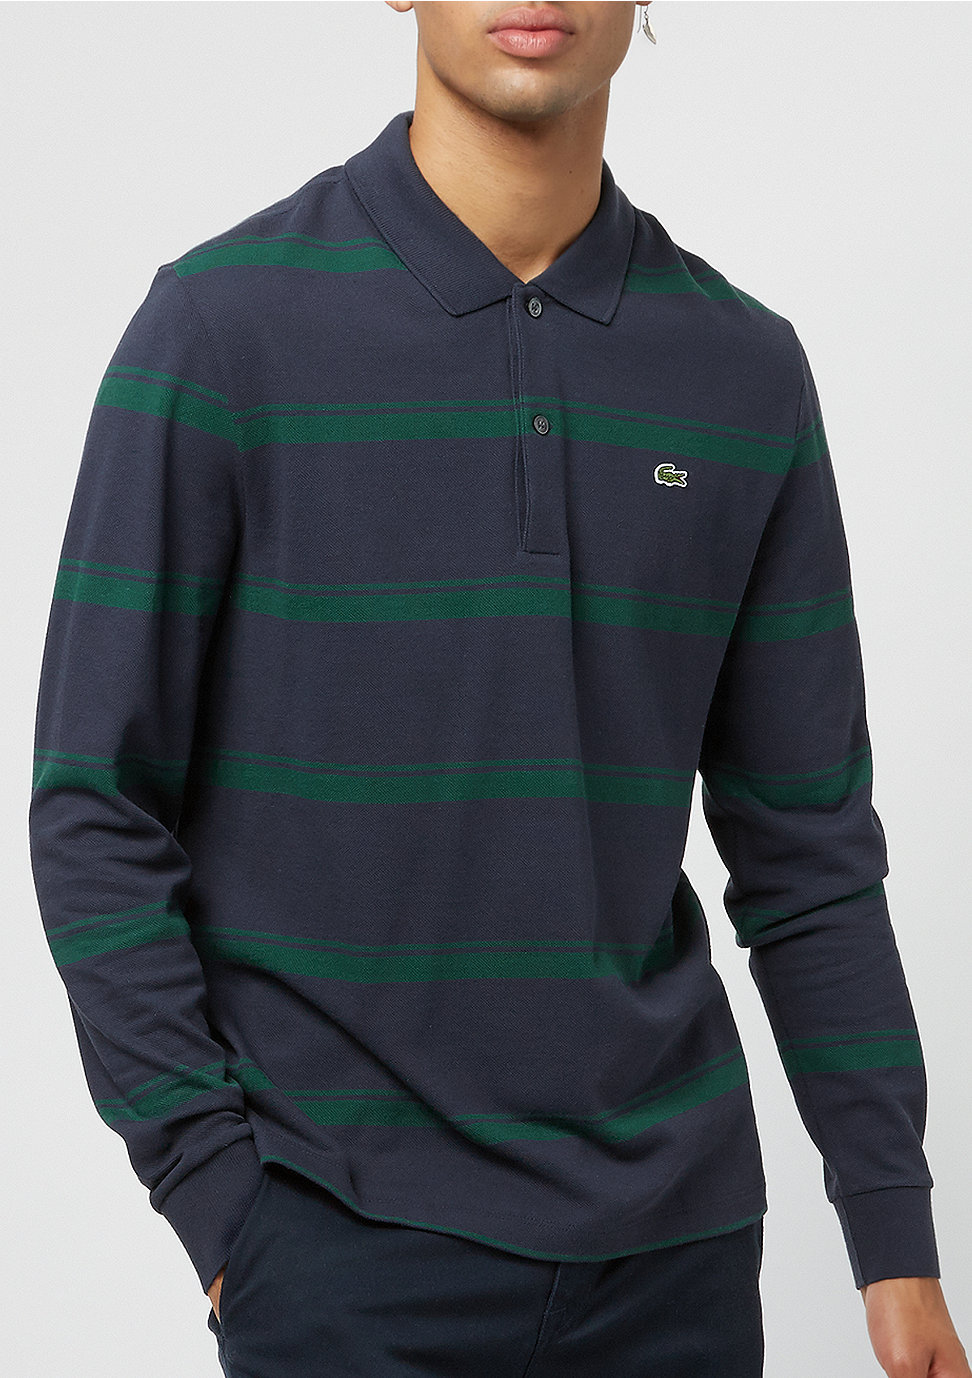 10330b89a8 Commander Lacoste Long sleeved ribbed collar shirt merdian blue/aconit  Polos chez SNIPES